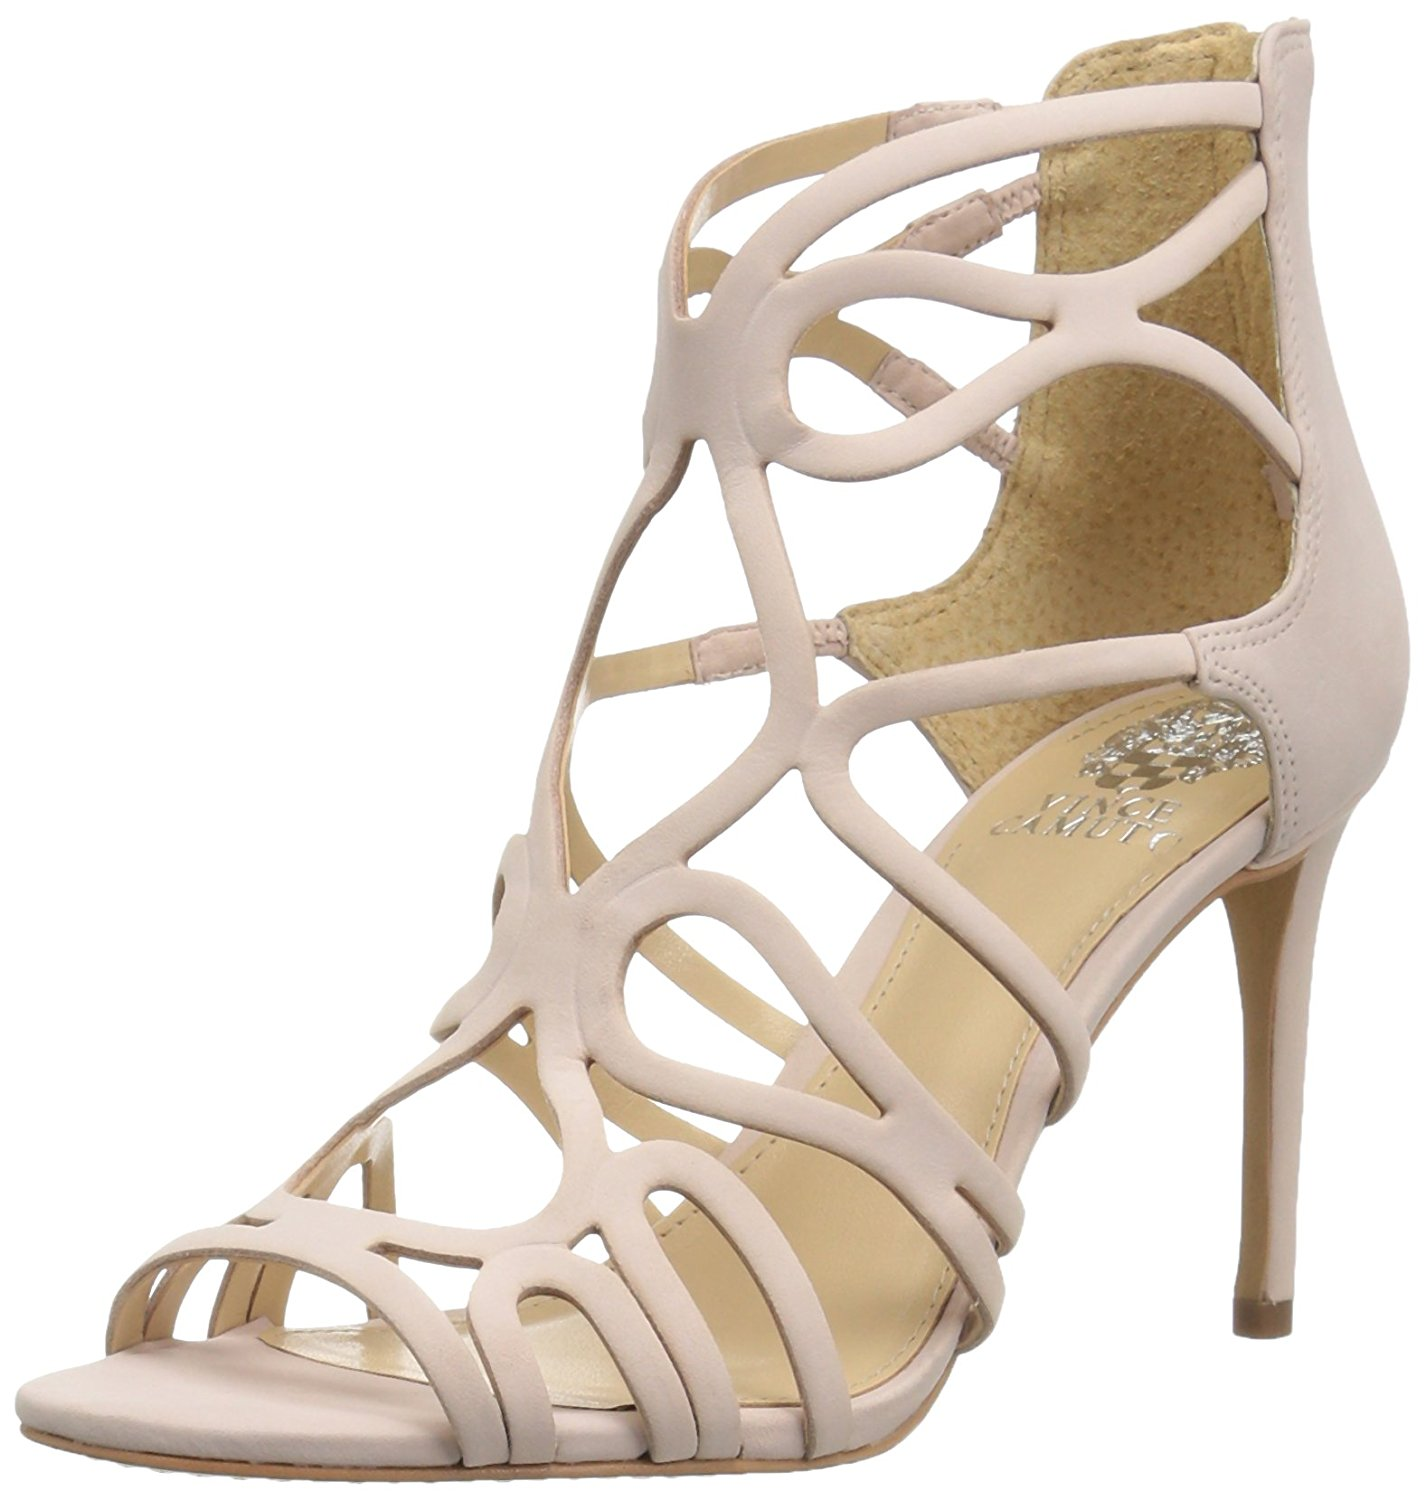 Vince Camuto Womens Lorrana Leather Open Toe Special